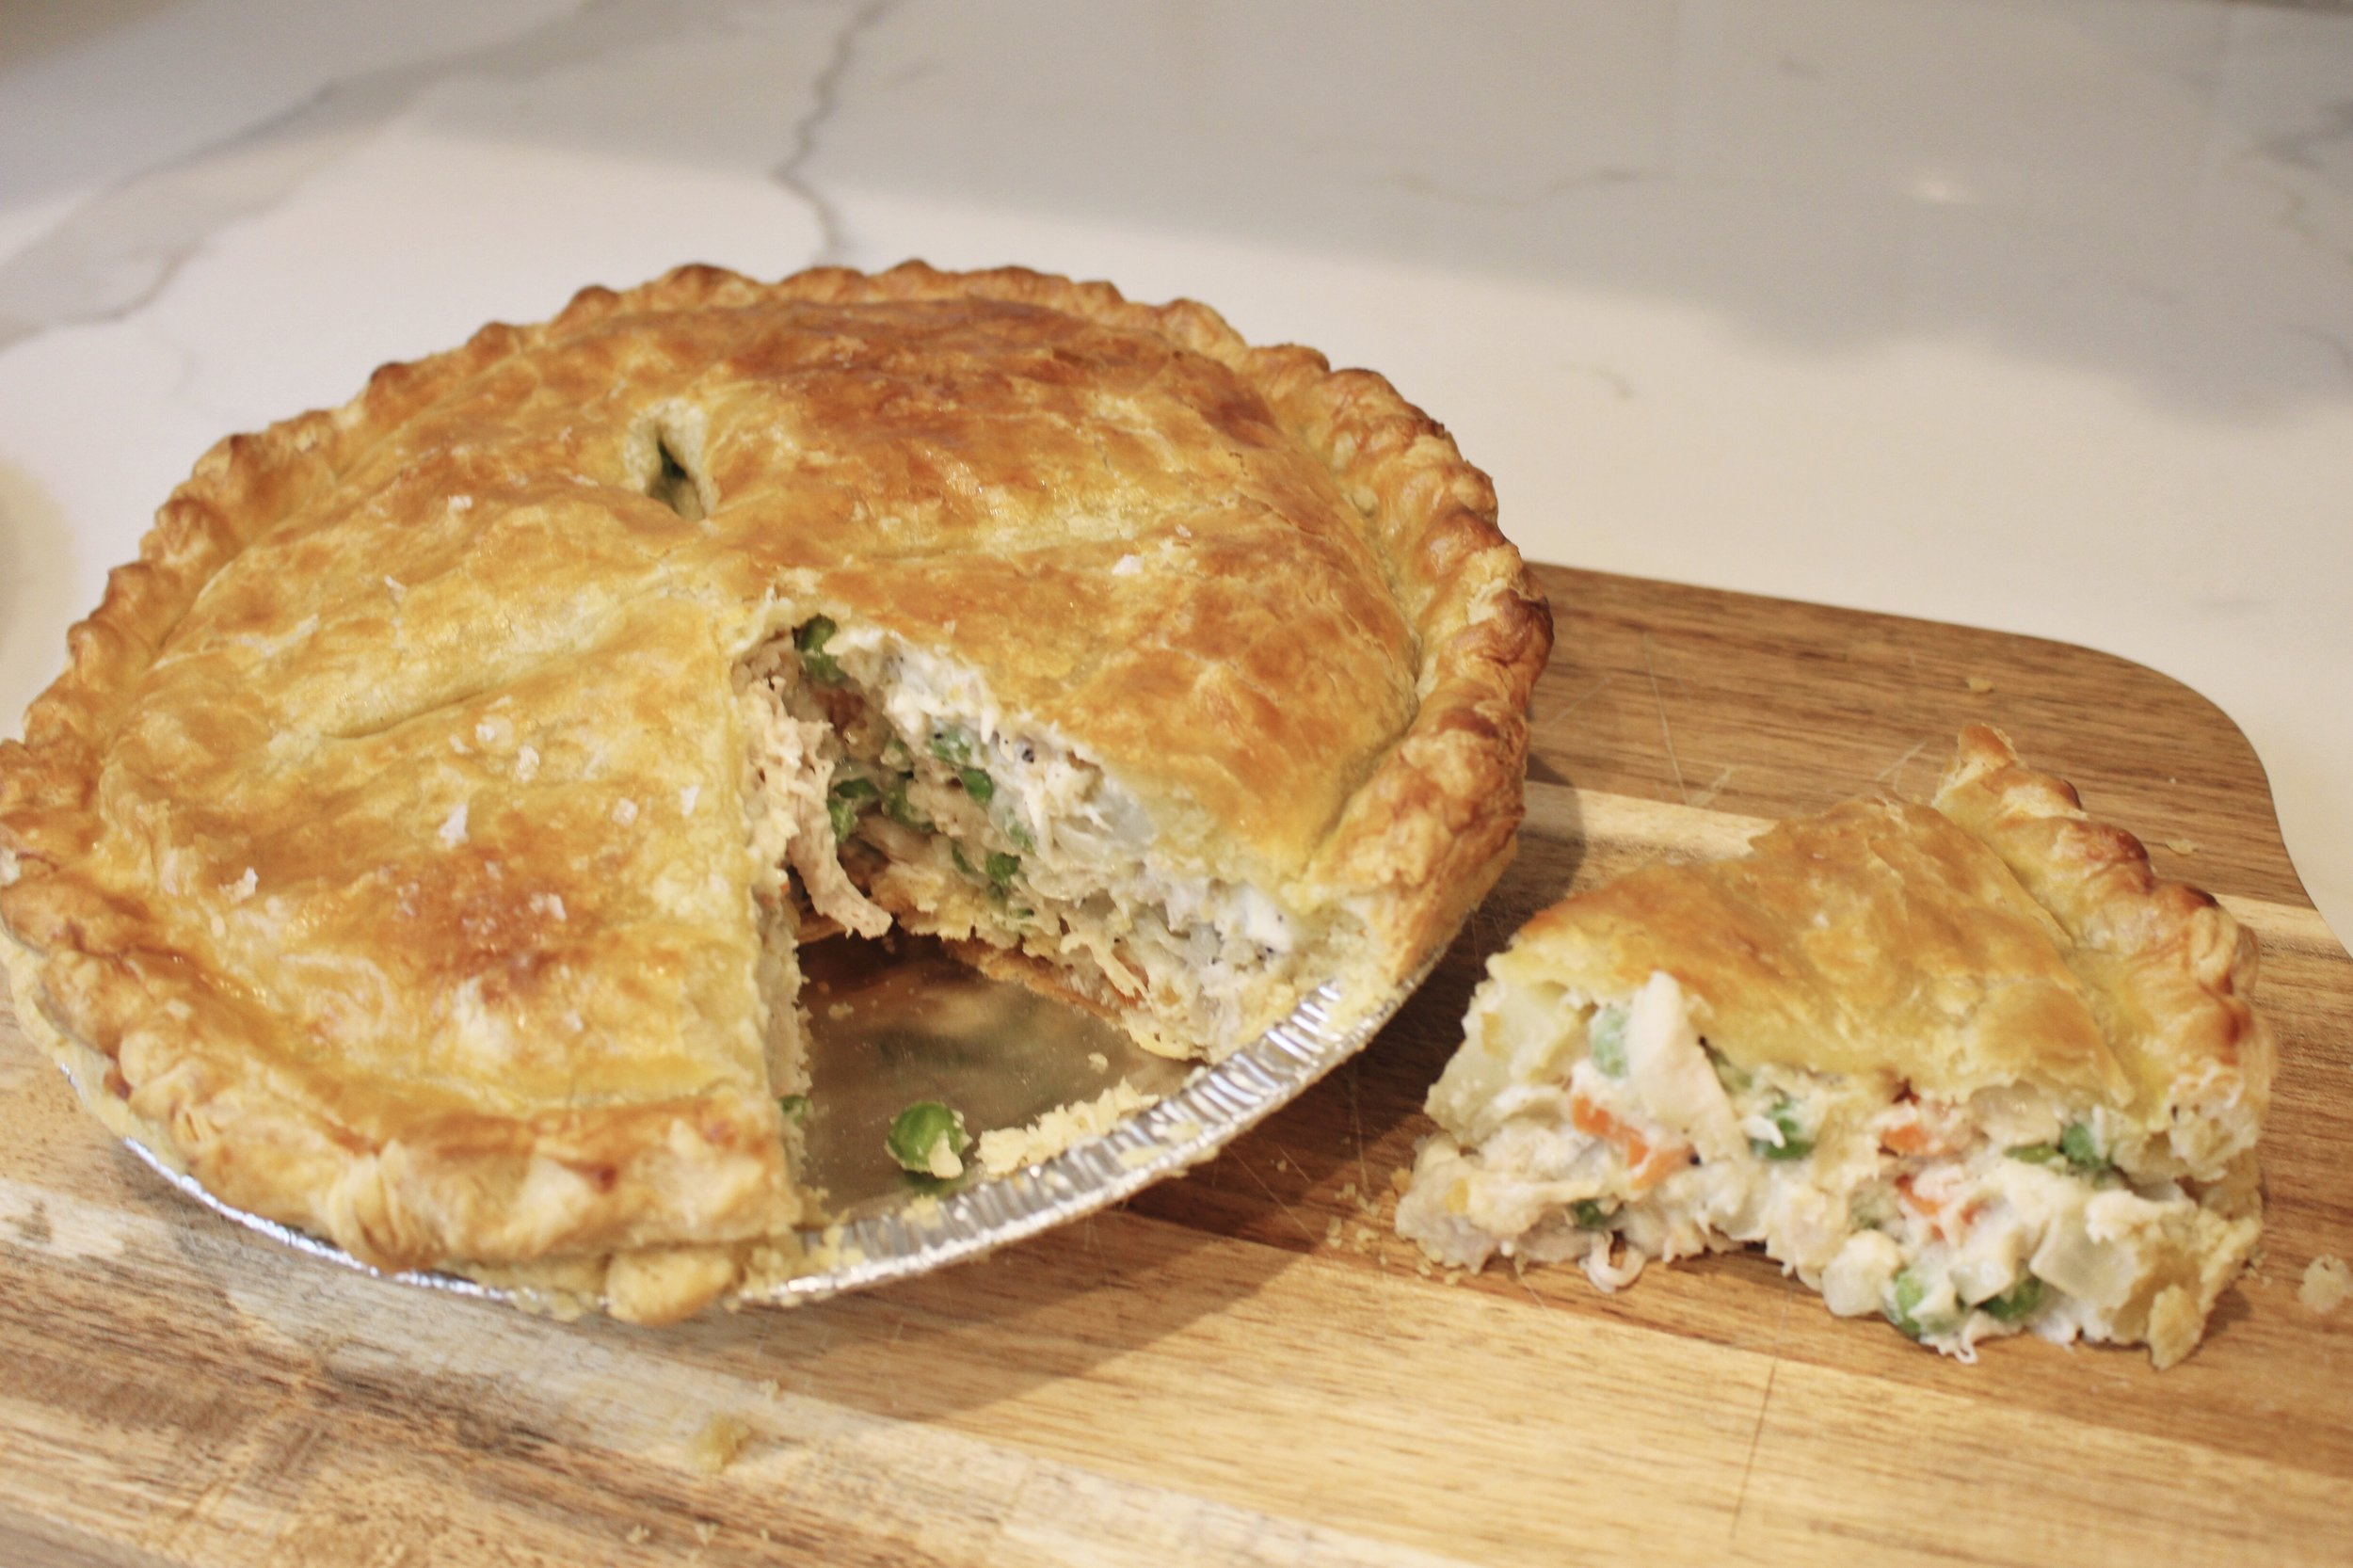 Chicken Pot Pie is honestly one of my first meals I can remember eating as a kid so it is the epitome of comfort food in my book. It was a staple in our home and once I started cooking regularly myself, i wanted to find the best version of this American cuisine classic. I have tweaked this recipe by omitting the poultry seasoning, adding 3 cloves of minced garlic and using puff pastry as my top layer instead of traditional pie crust. You are welcome to stick to the original recipe but I have found I like this version better. I like to serve this with a fruit salad, green salad or if I have time to prep it, a broccoli salad.